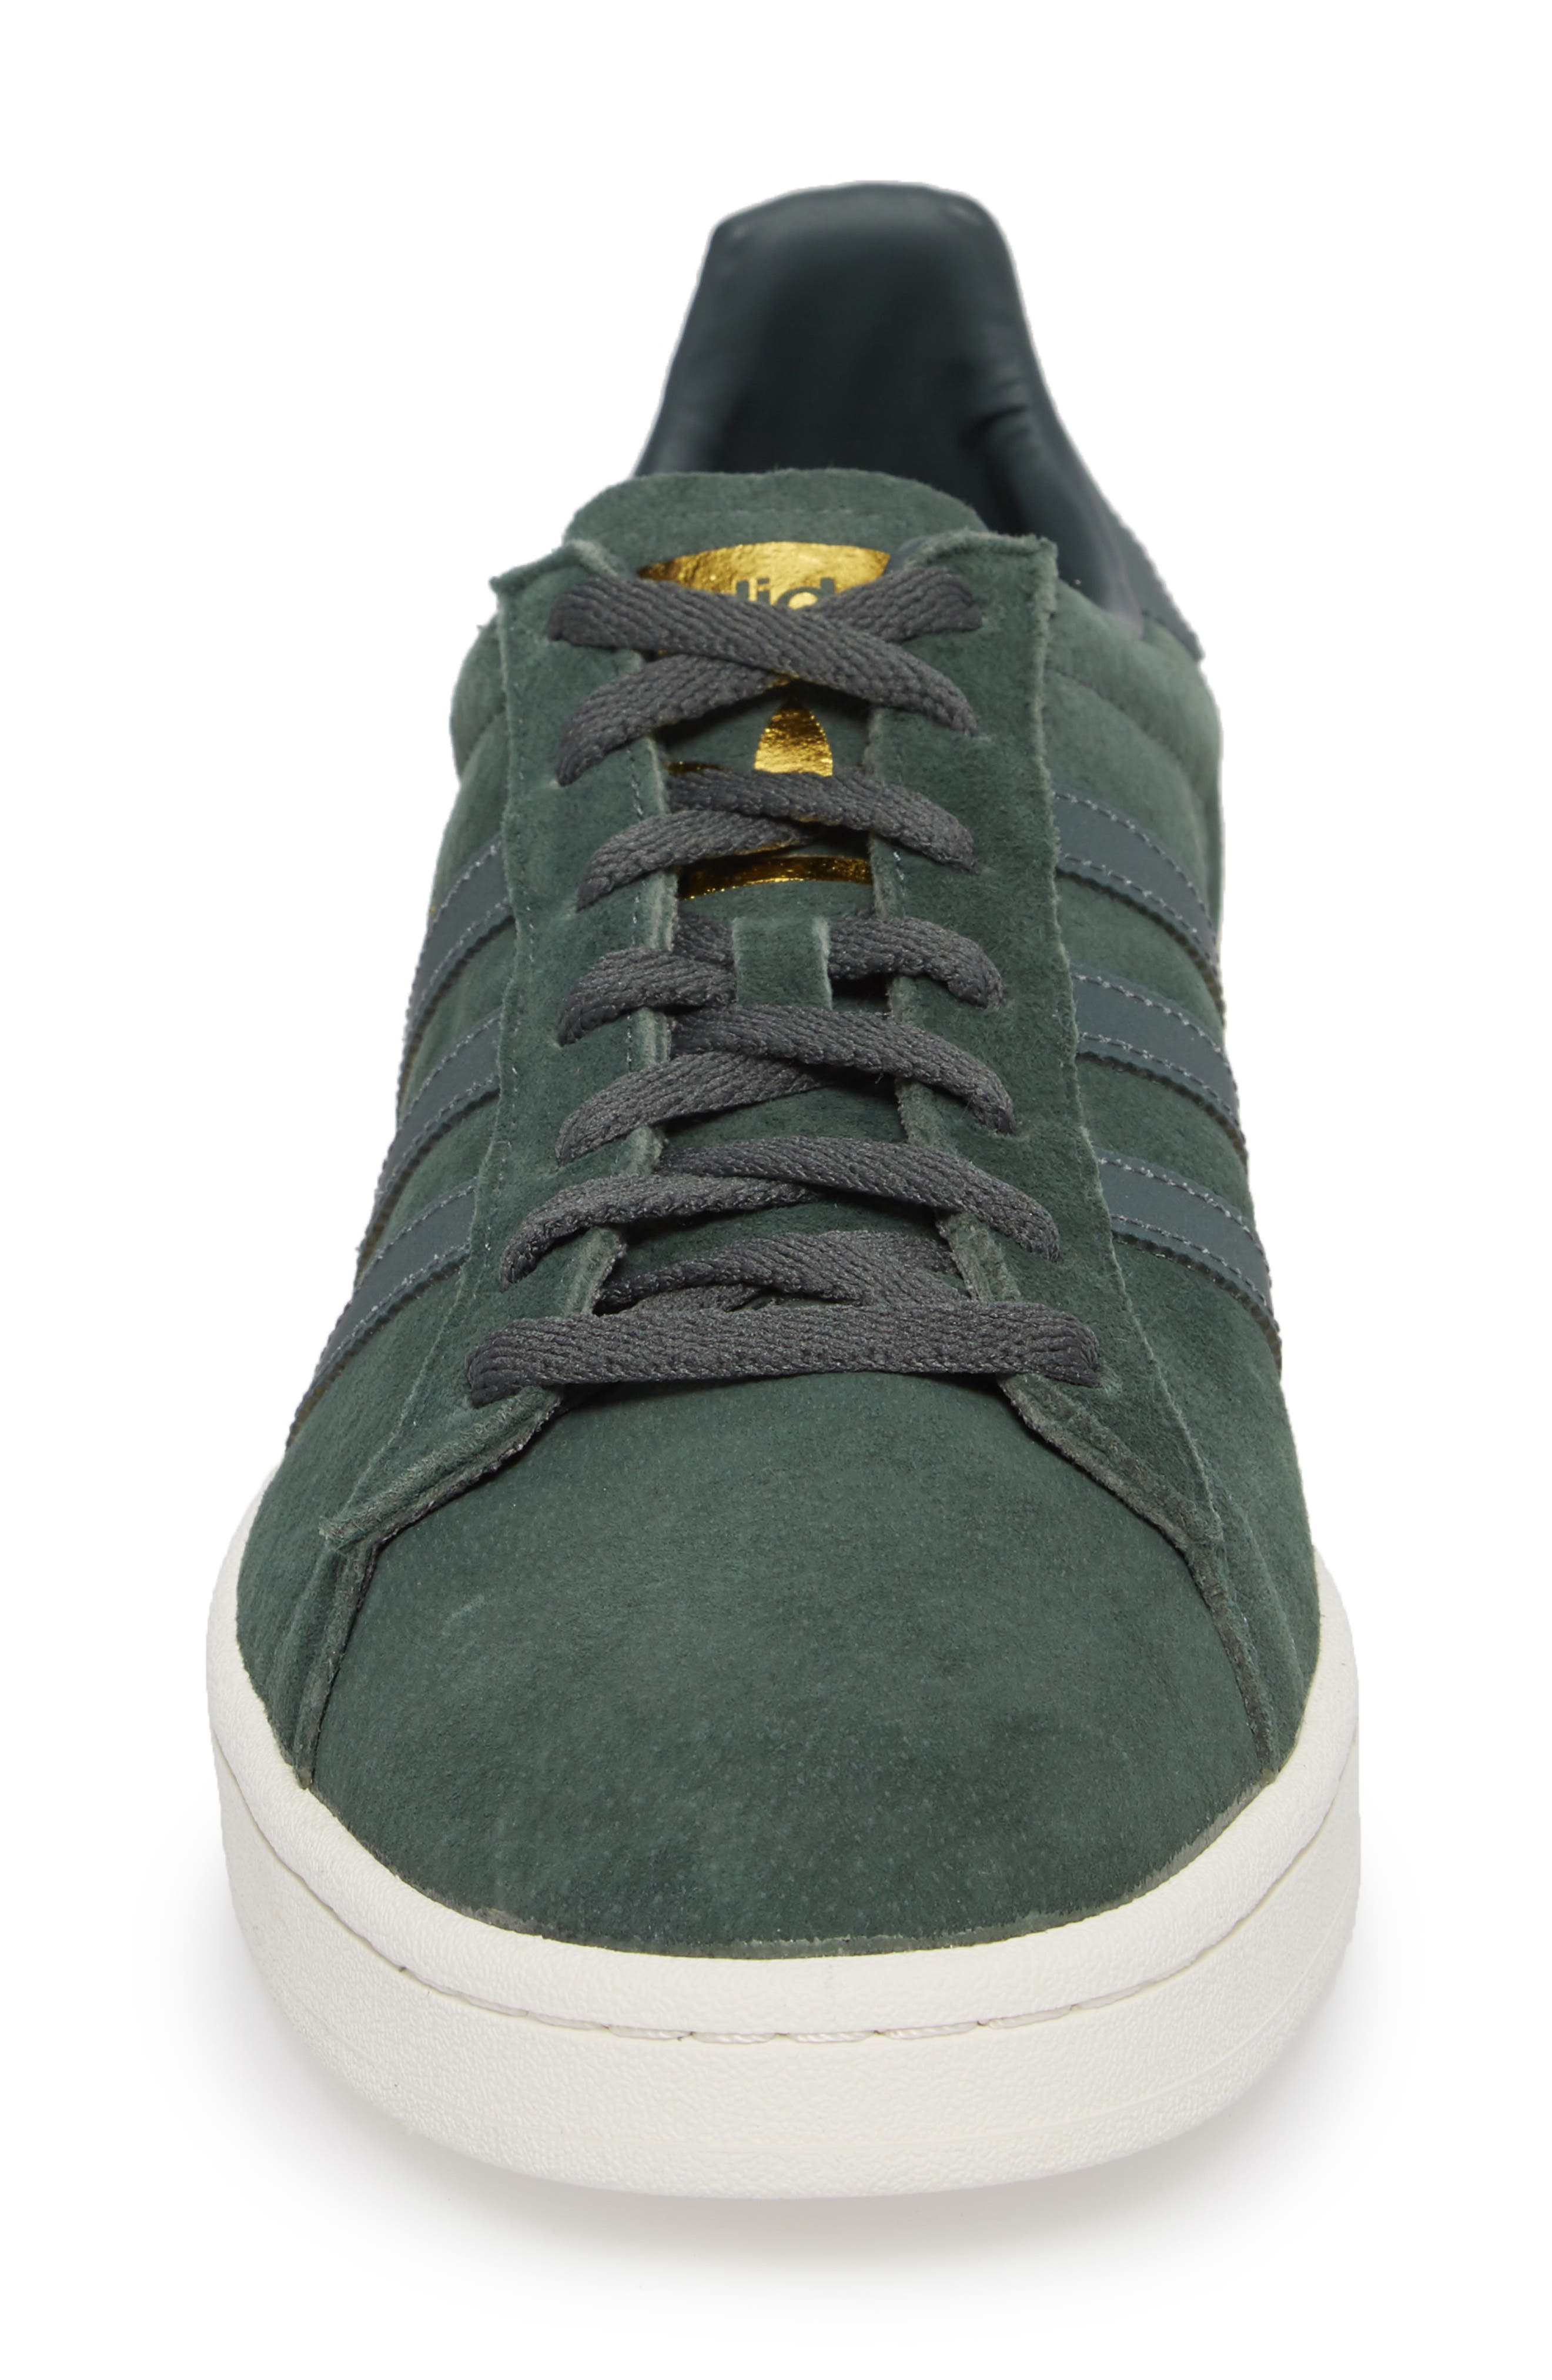 Campus Sneaker,                             Alternate thumbnail 4, color,                             Utility Ivy/ Reflective/ Gold